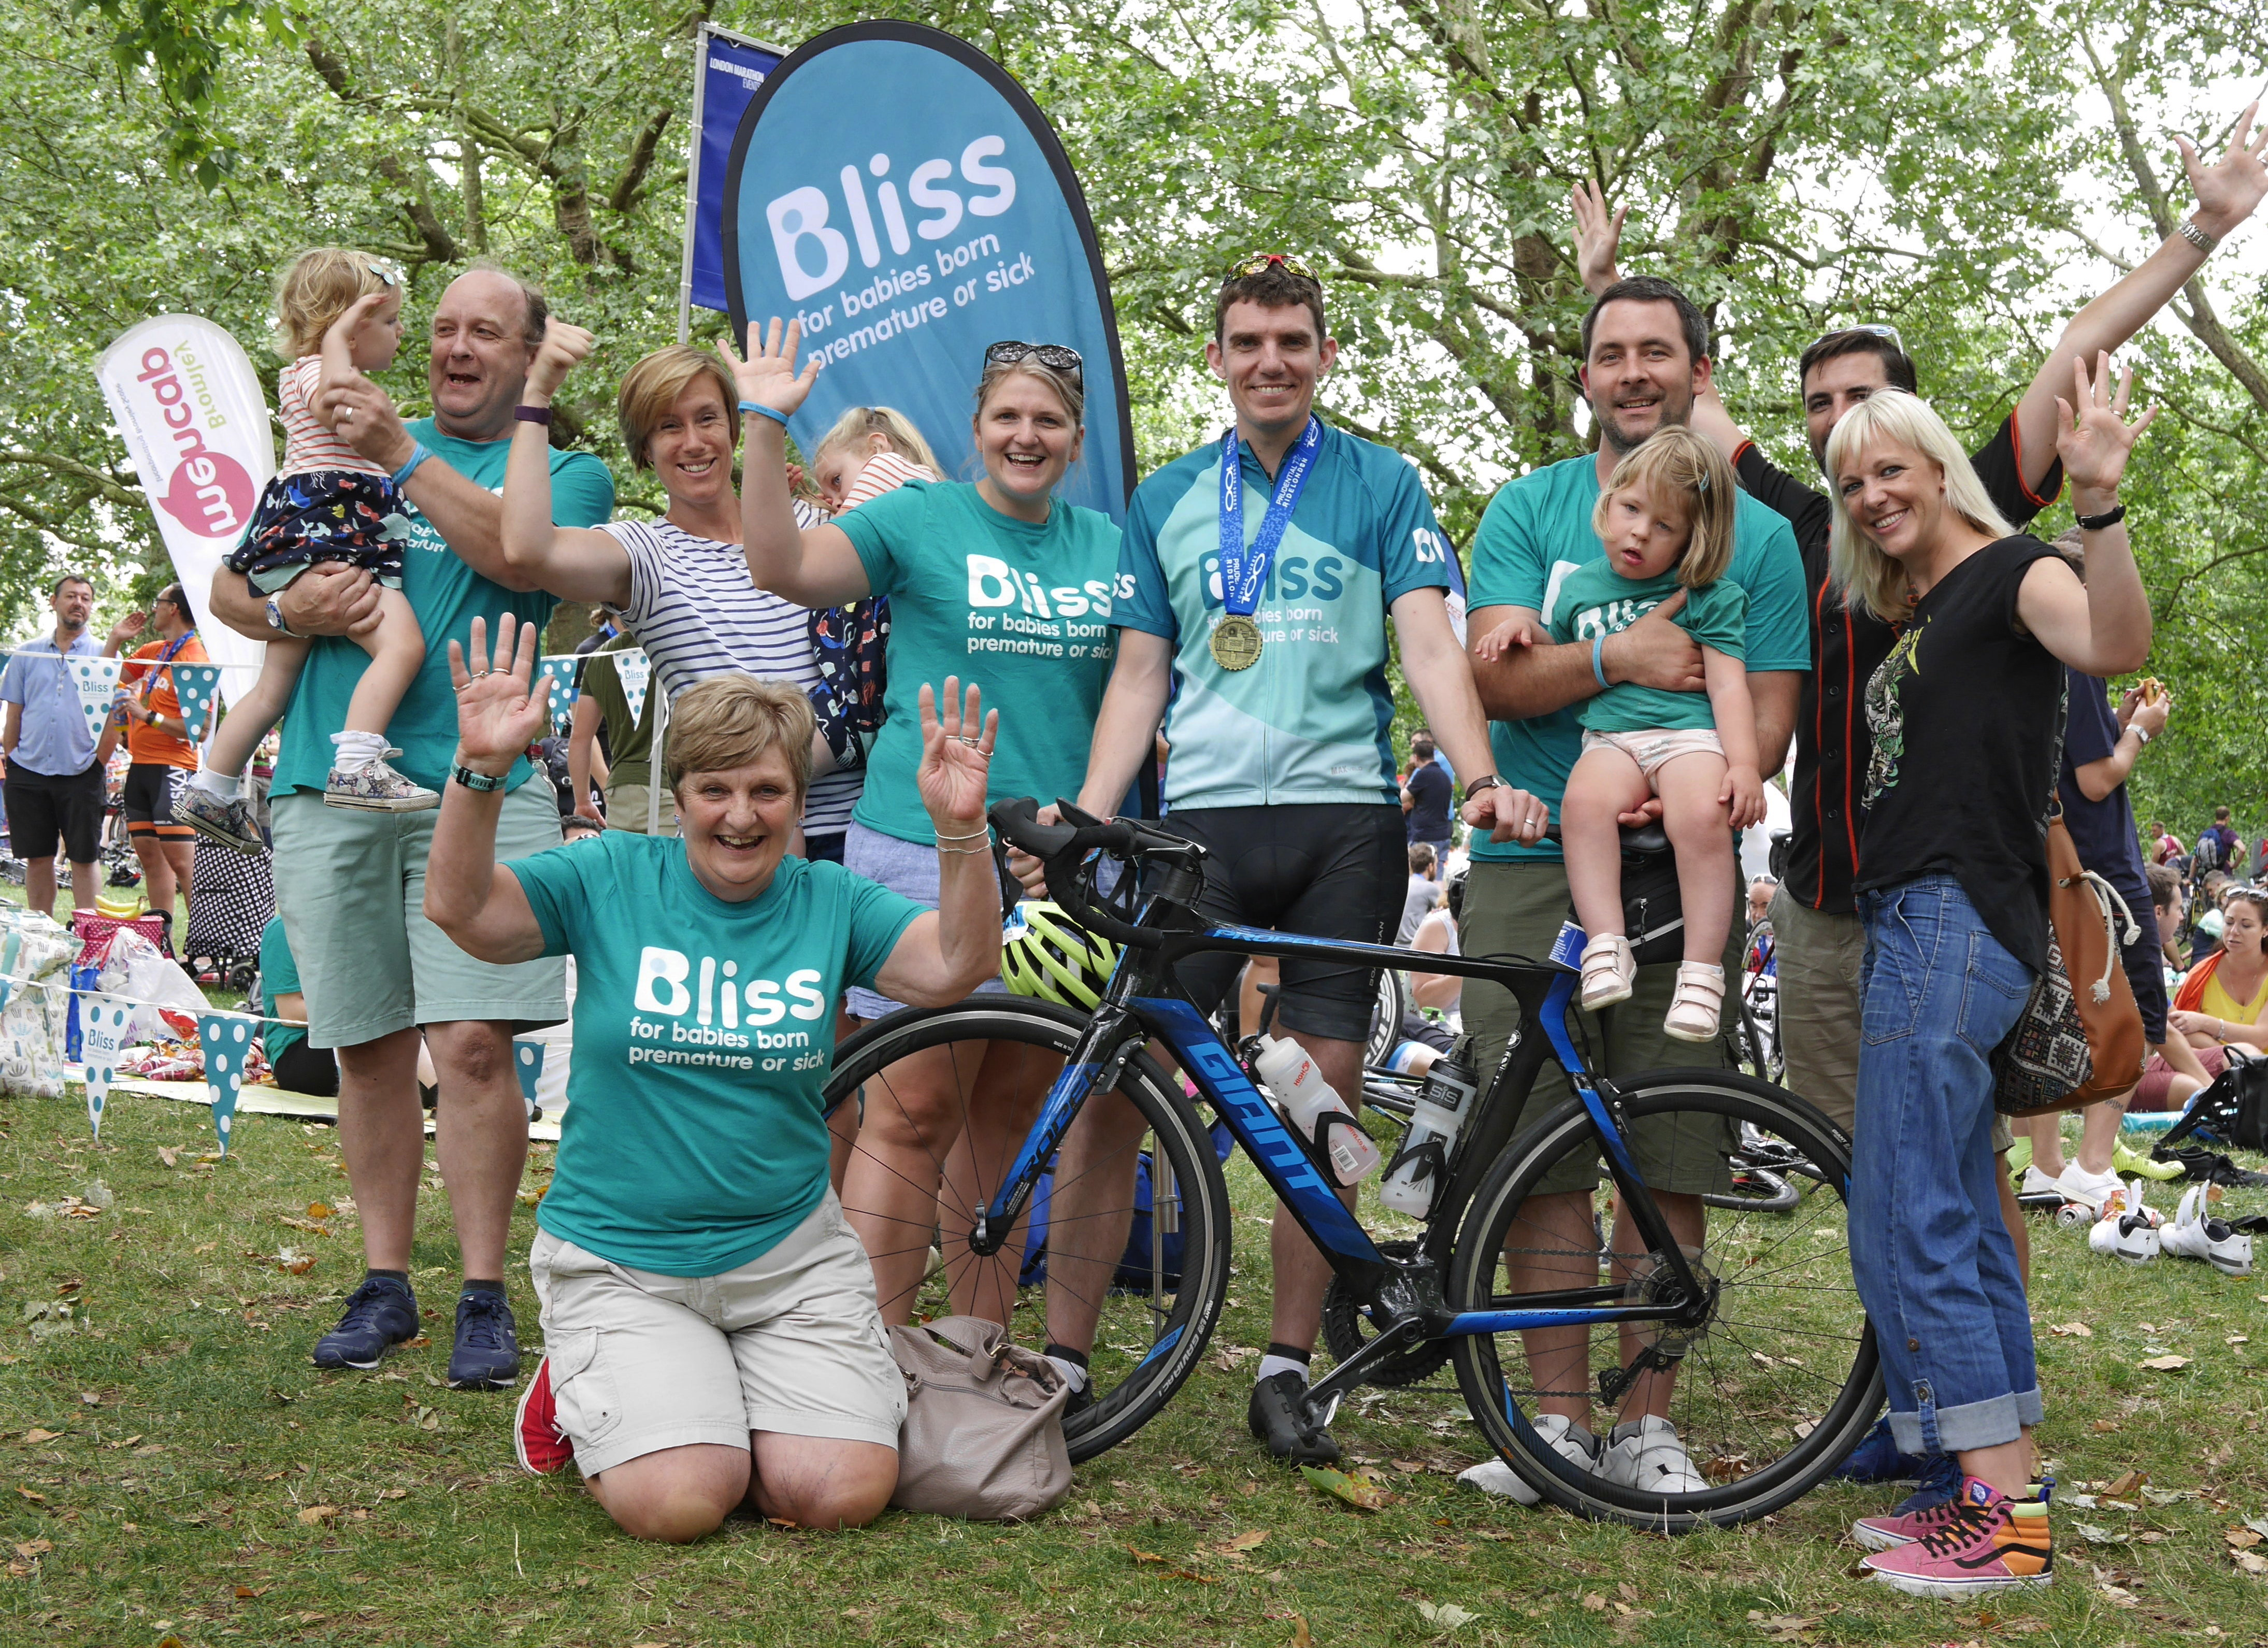 Lots of Bliss supporters at the finish